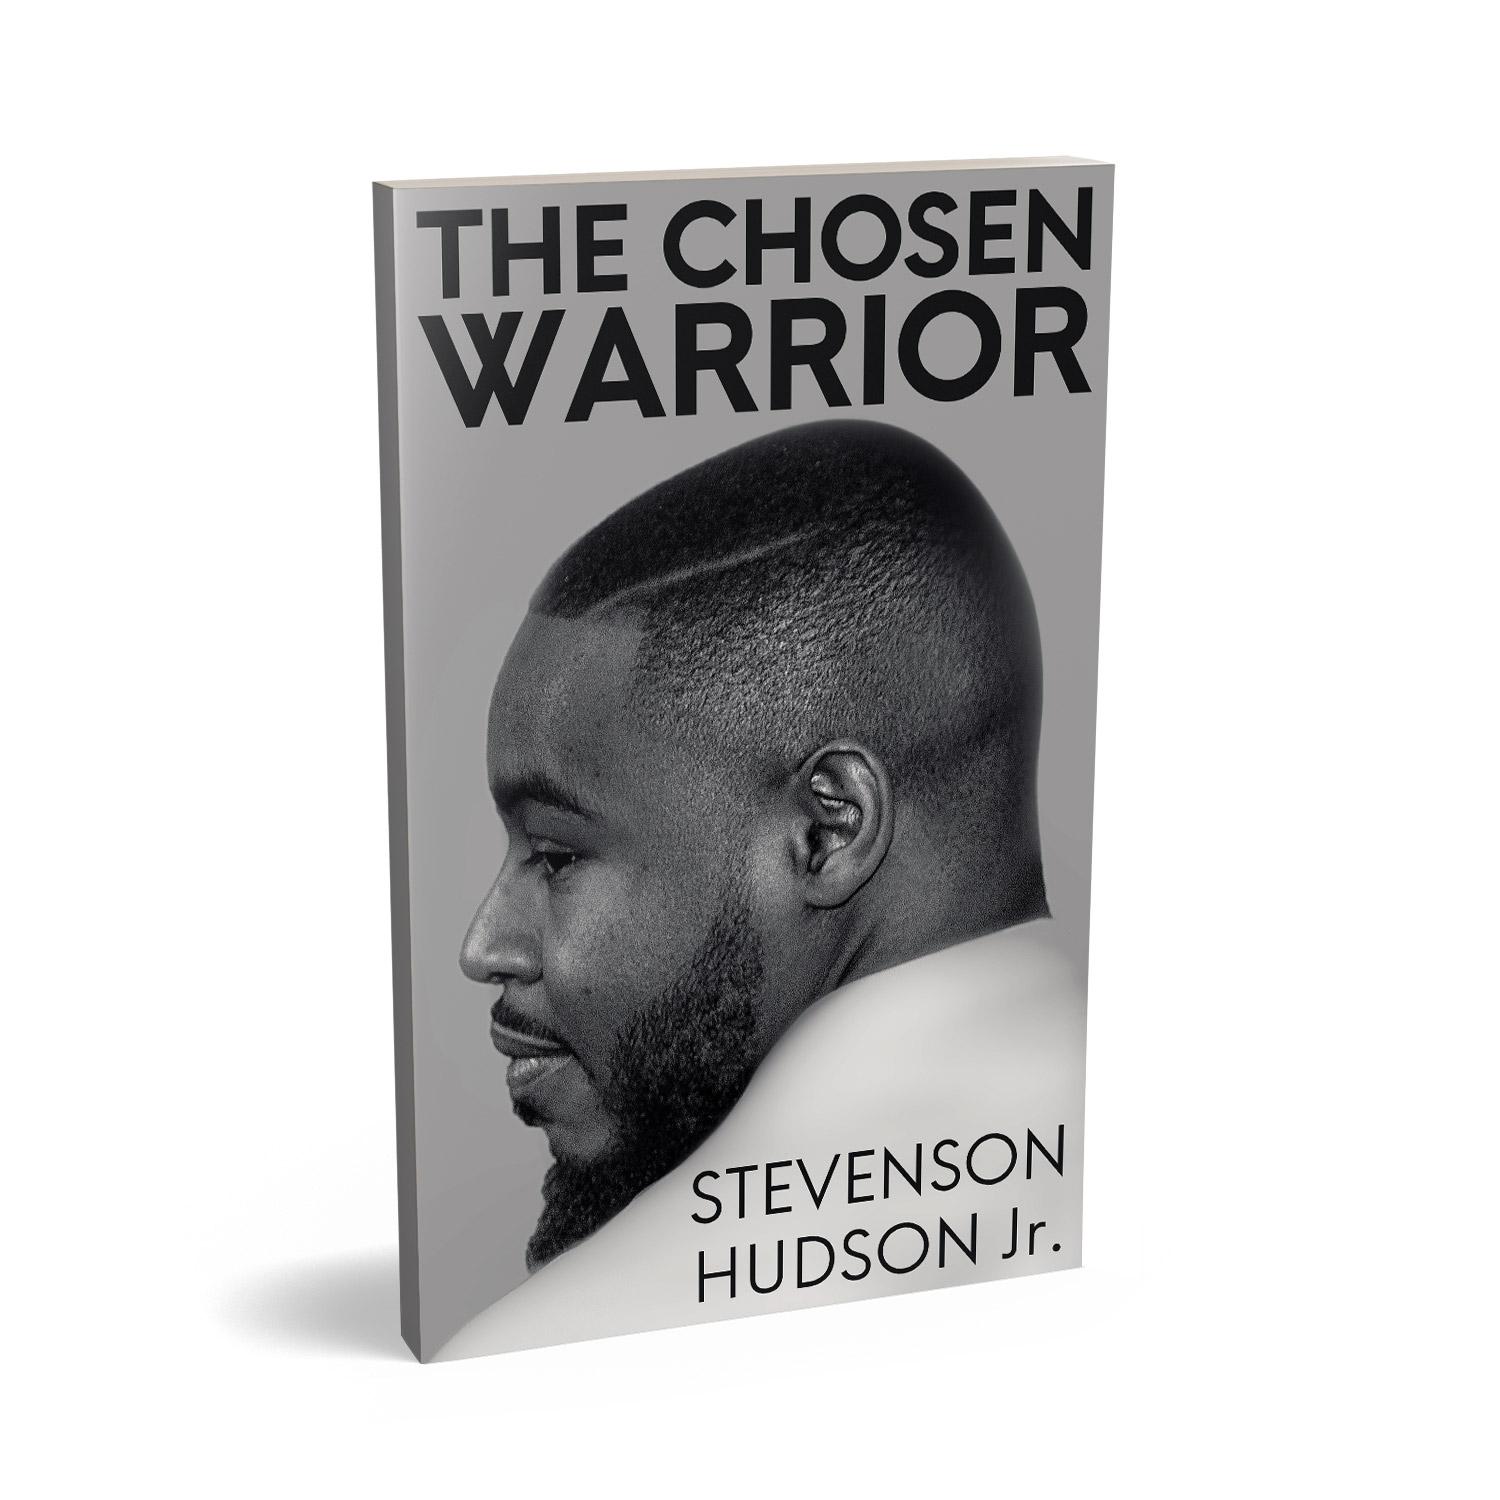 'The Chosen Warrior' is a powerful social memoir, by Stevenson Hudson Jr. The book cover and interior were designed by Mark Thomas, of coverness.com. To find out more about my book design services, please visit www.coverness.com.